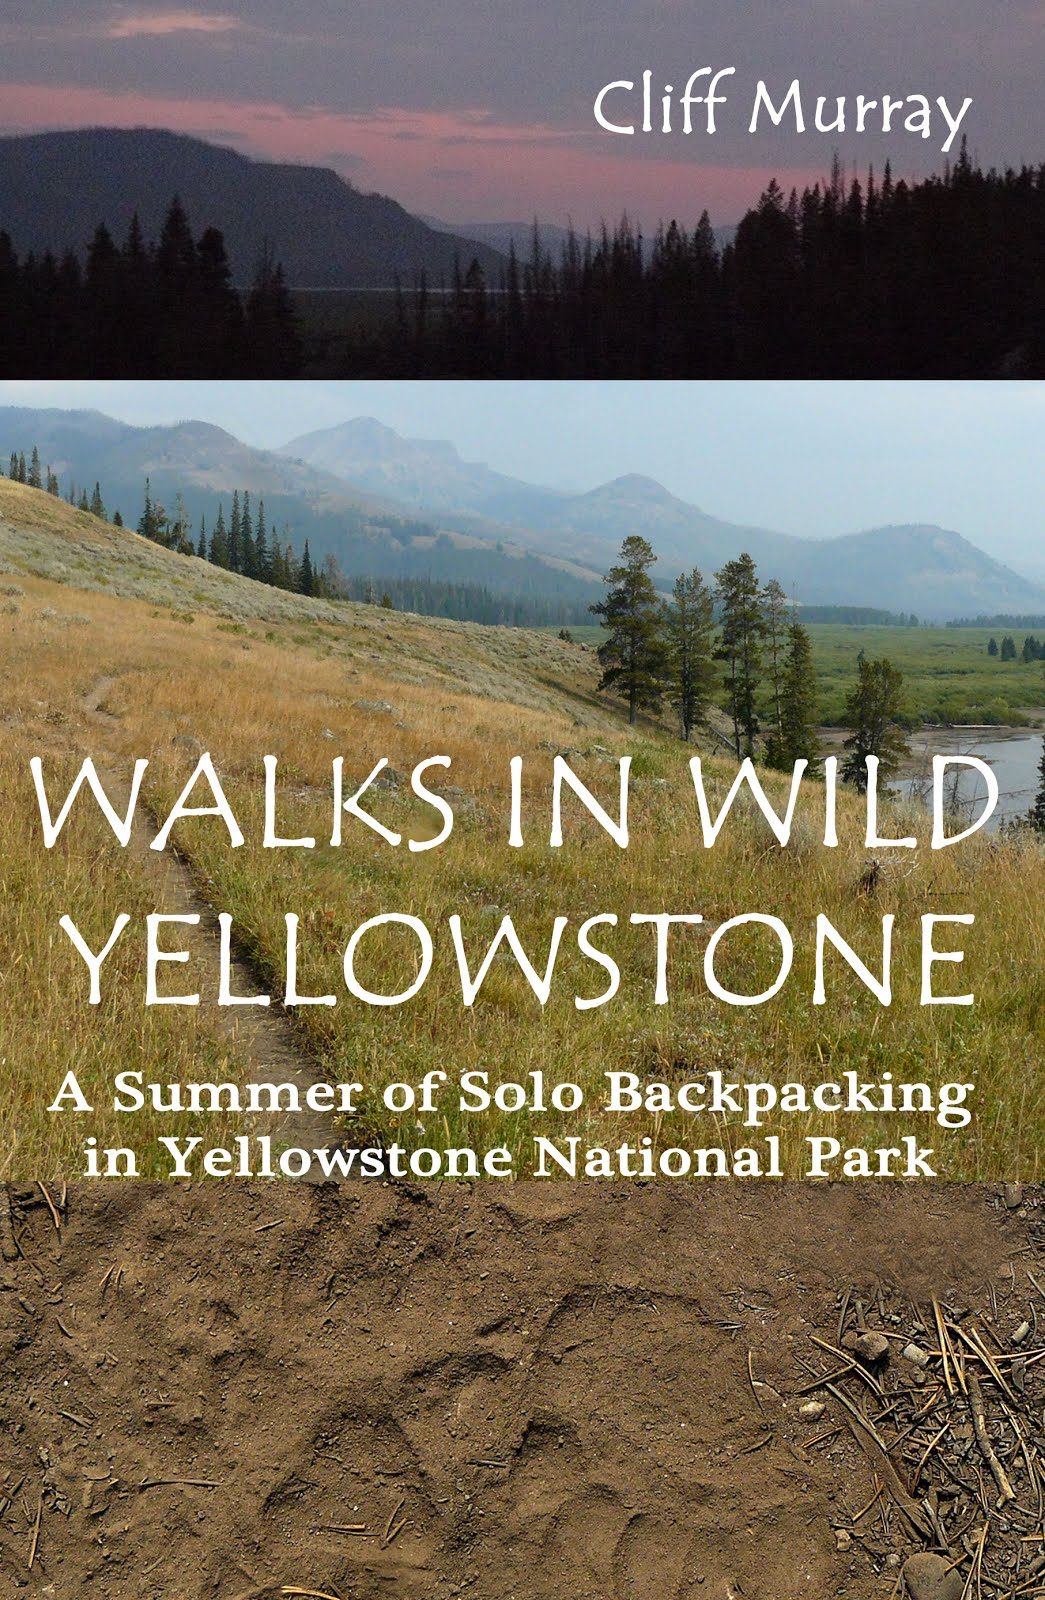 My Yellowstone Book is out!